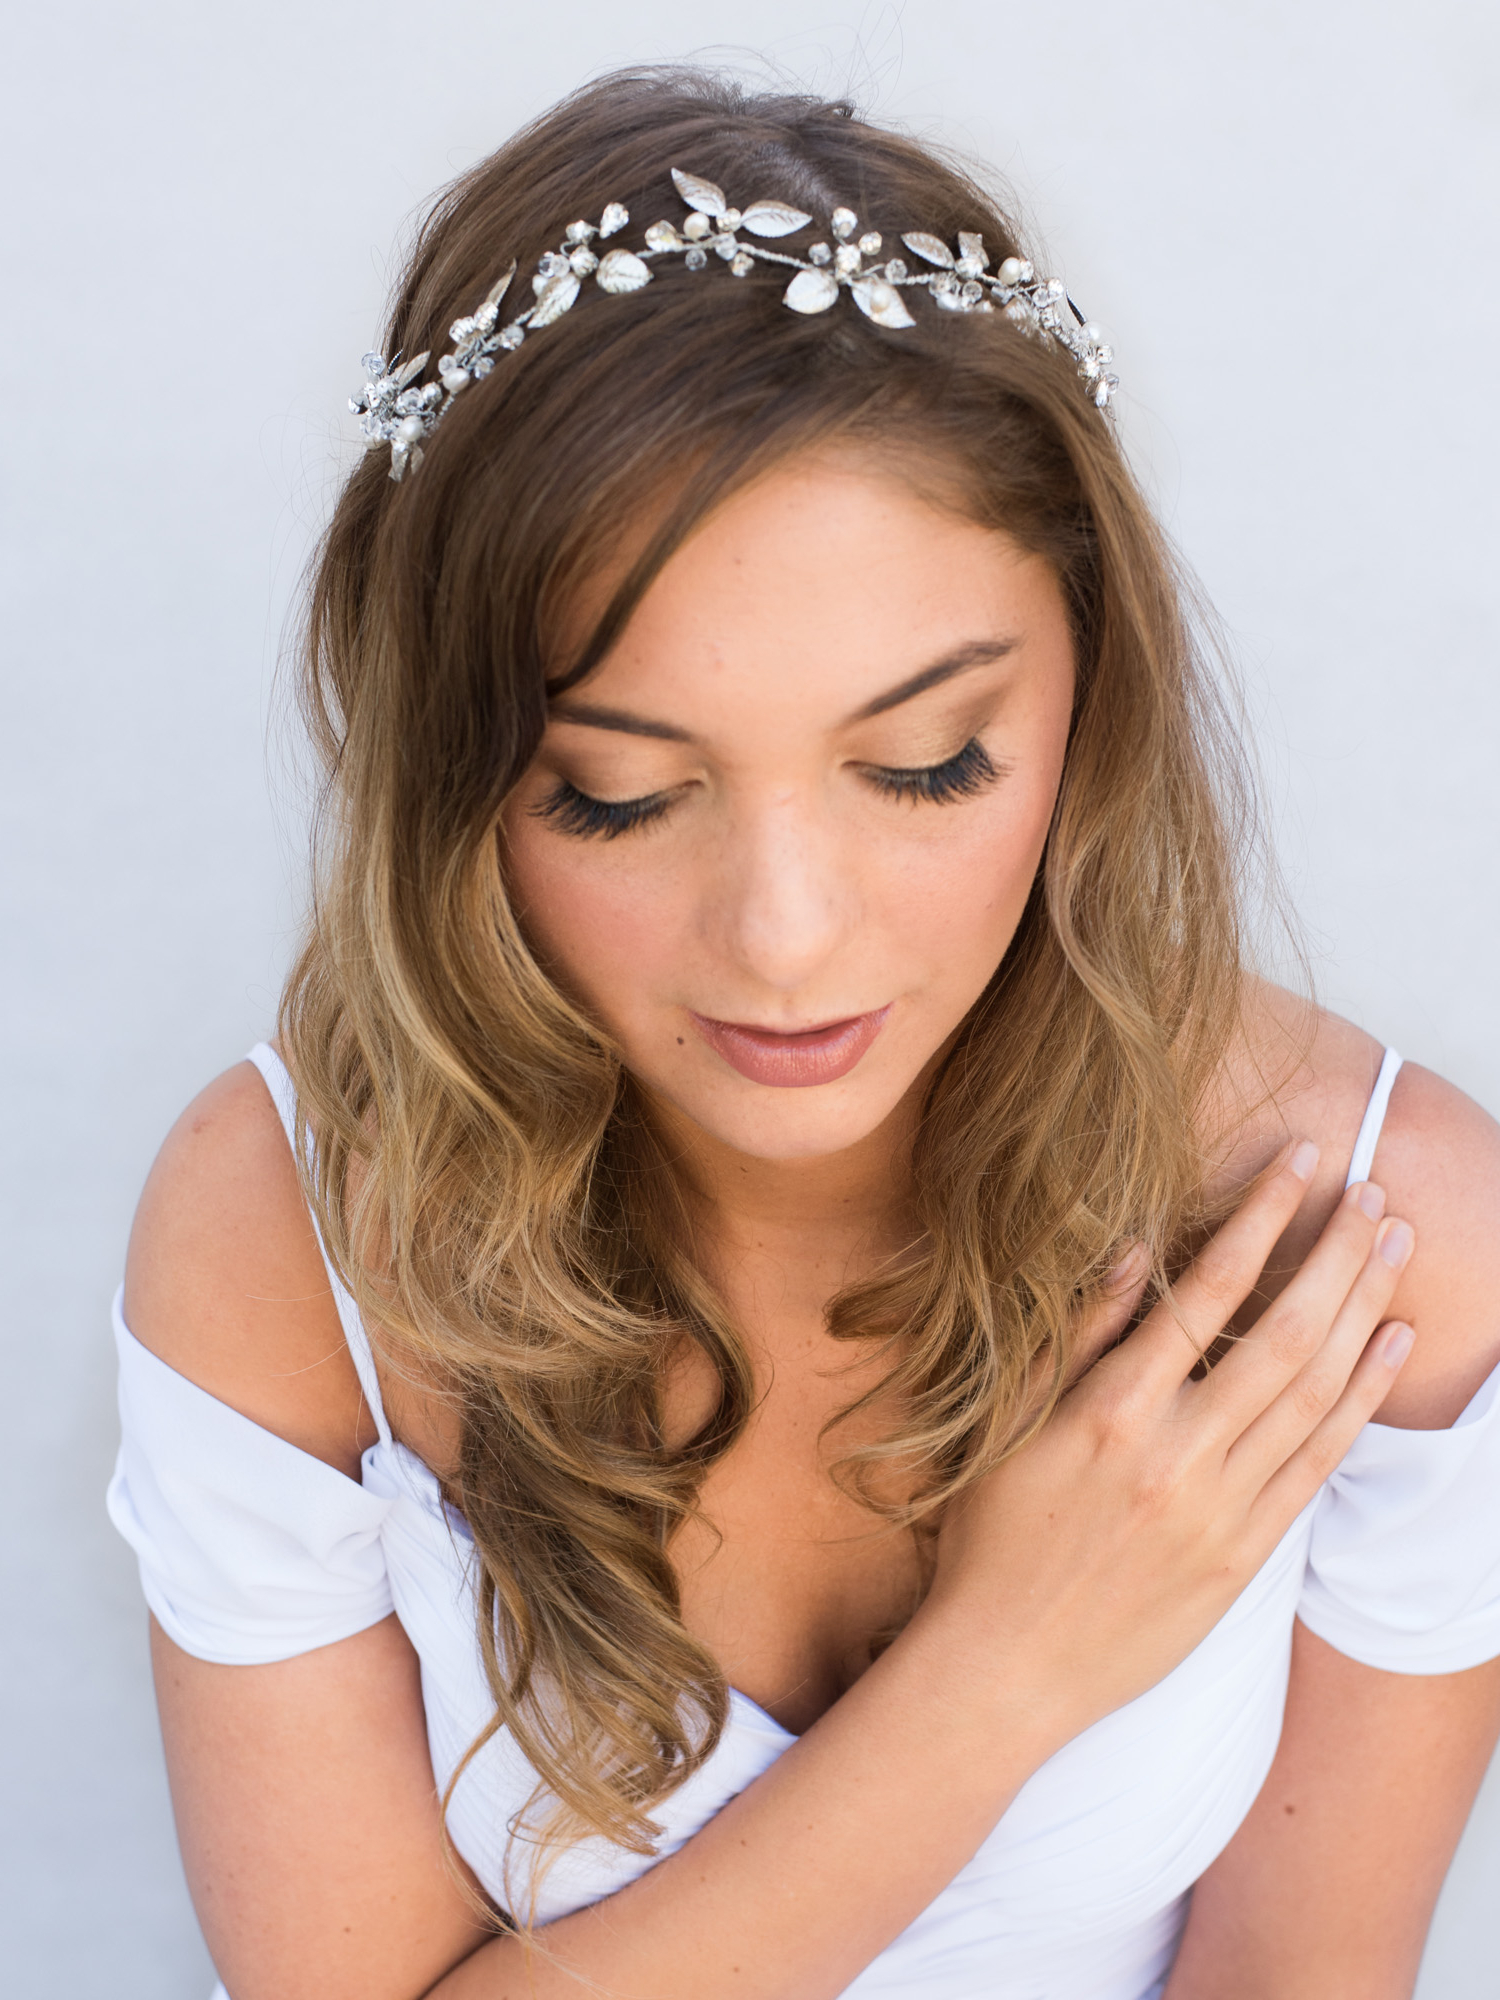 Top 10 Tips For Choosing Your Bridal Hair Accessories – Hair Comes Throughout Best And Newest Flower Tiara With Short Wavy Hair For Brides (View 15 of 20)